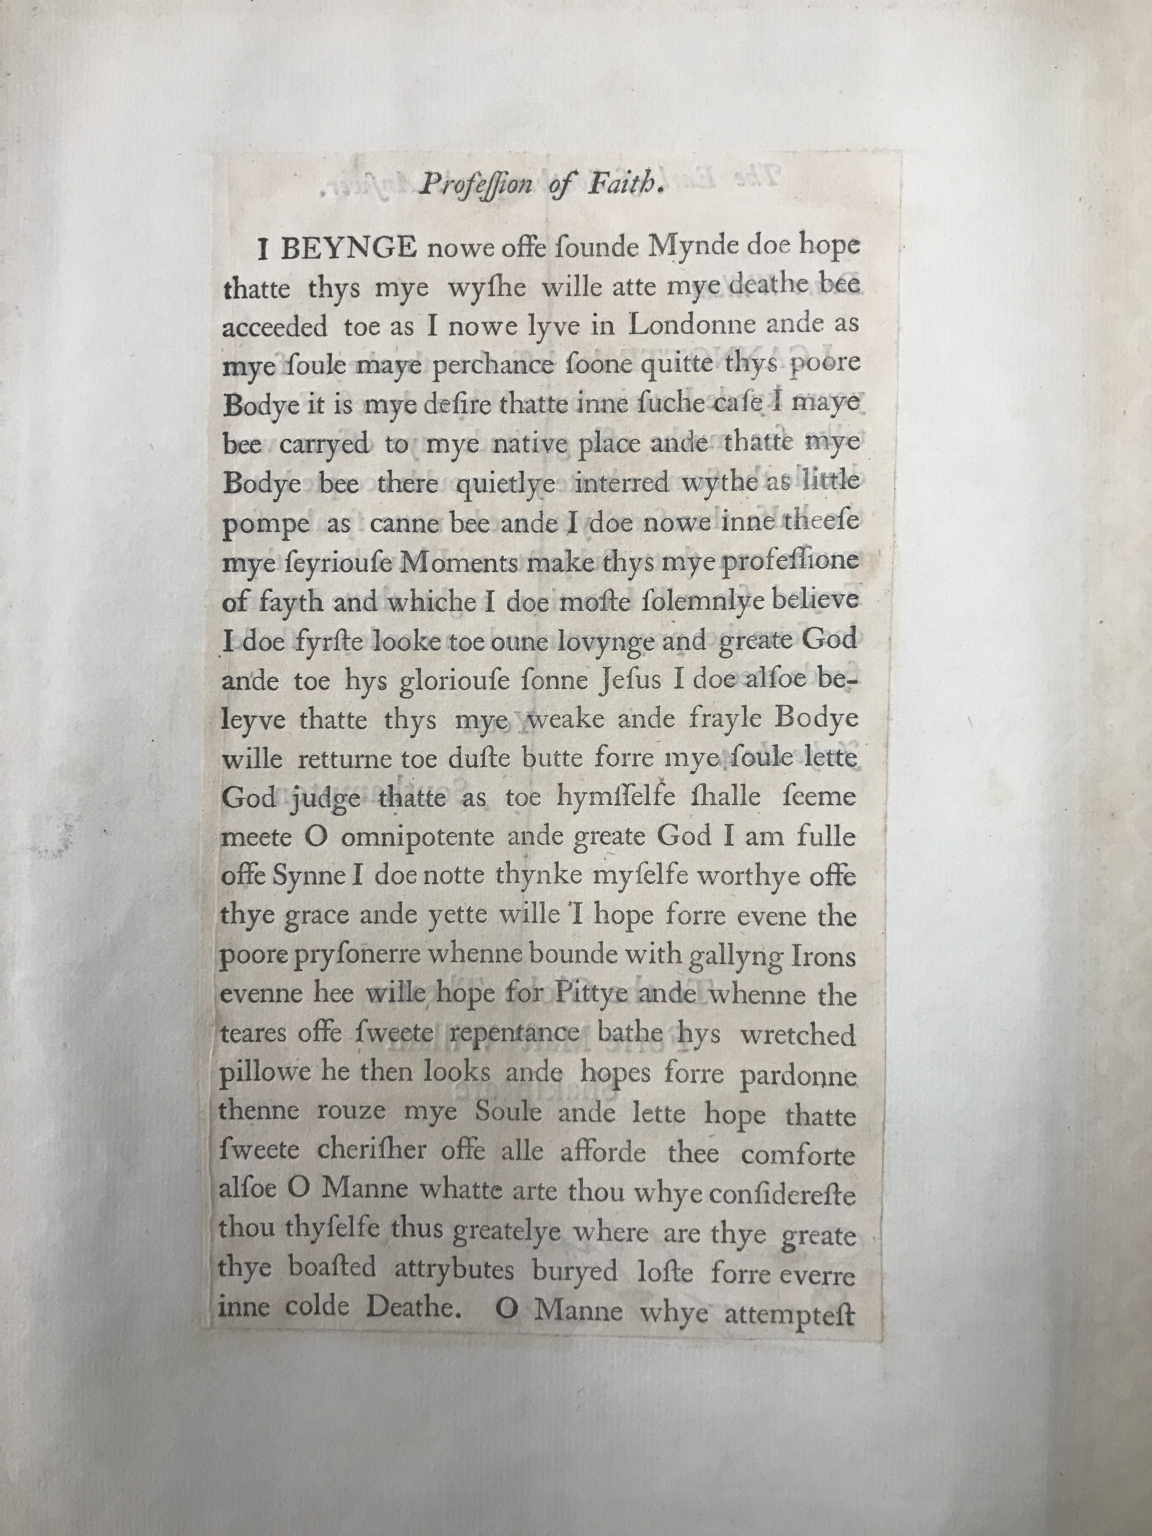 Forgeries by William Henry Ireland of documents pretended to be in Shakespeare's hand [manuscript], ca. 1800.